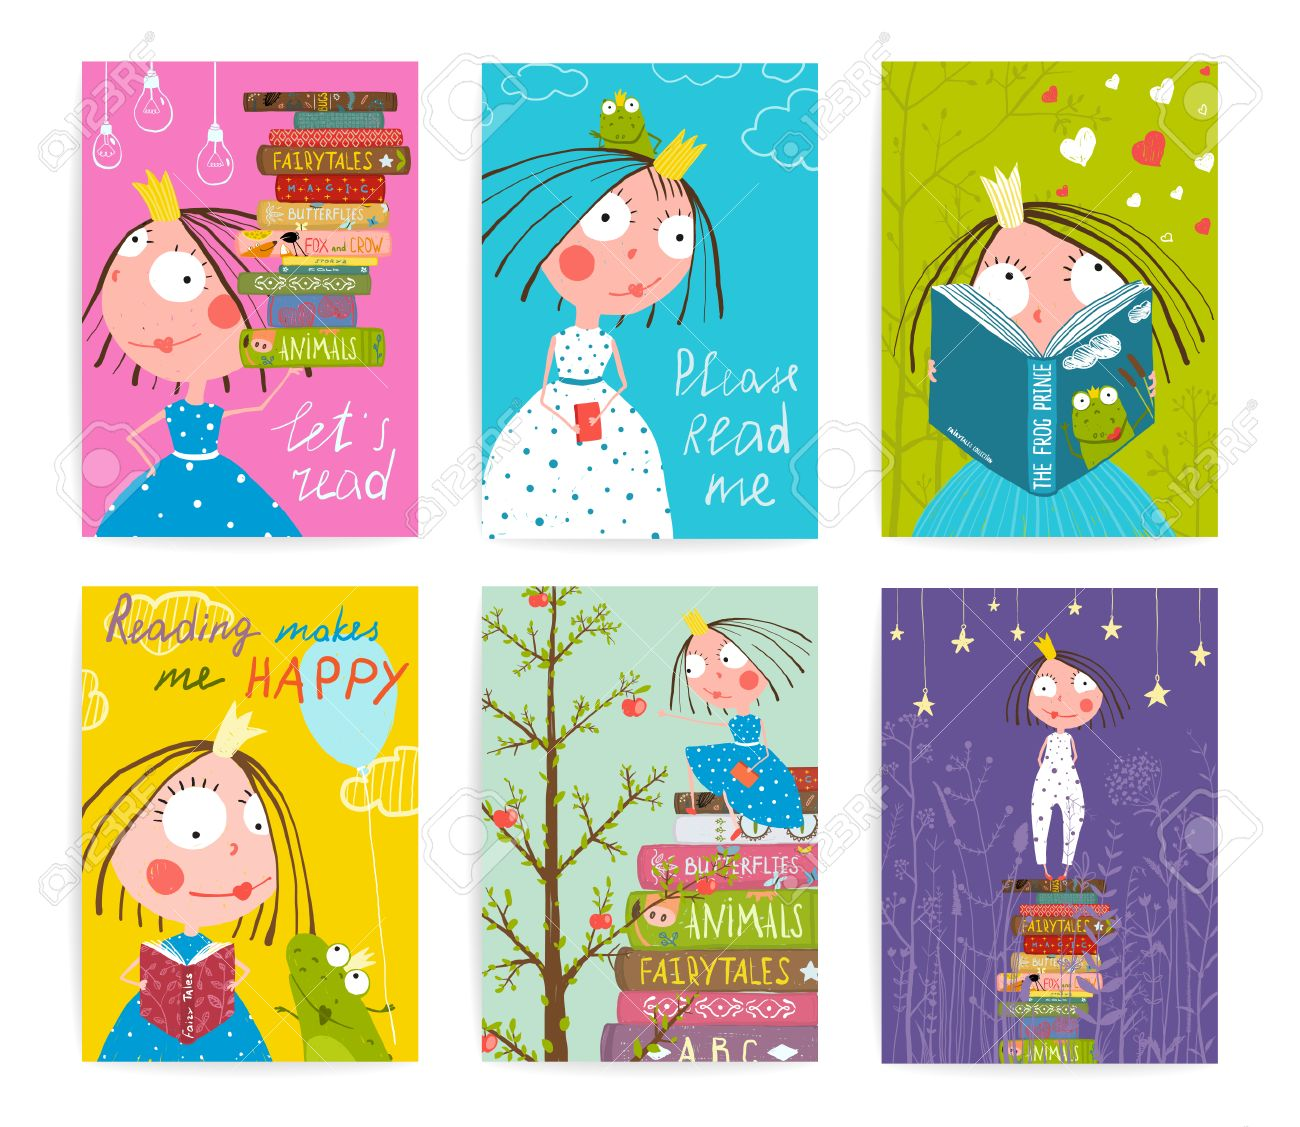 Cute Little Princess Kids Reading Fairy Tale Books Library Poster Collection. Colorful a4 cute girl cards big bundle with a sign for a little child about reading literature. Vector illustration. - 45635108